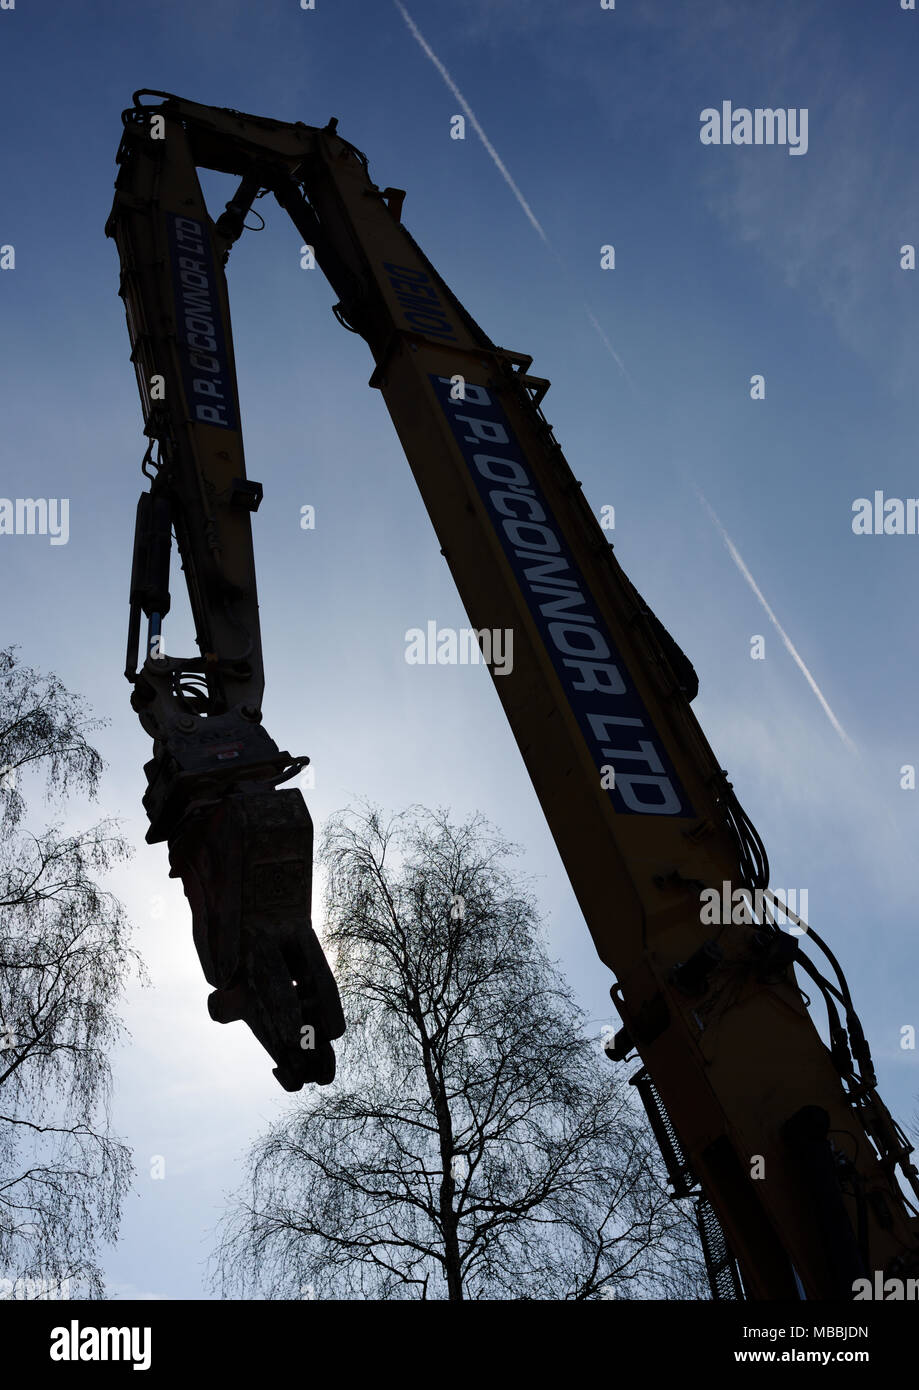 High reach hydraulic demolition excavator boom and concrete crusher attachment backlit by sun in bury lancashire - Stock Image